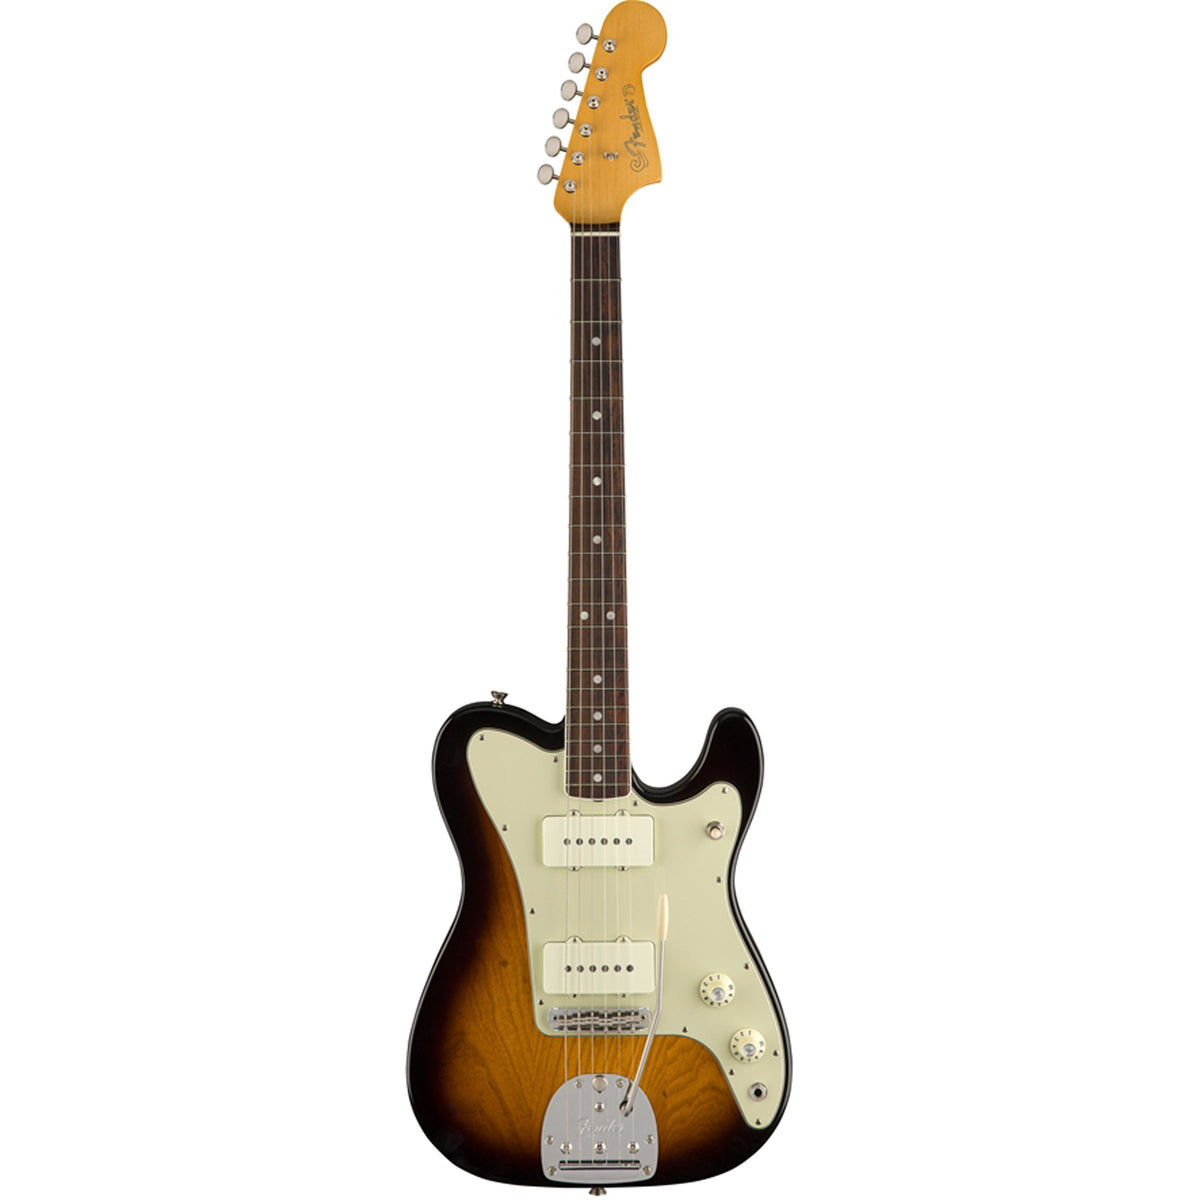 2018 Limited Edition Jazz-Tele®